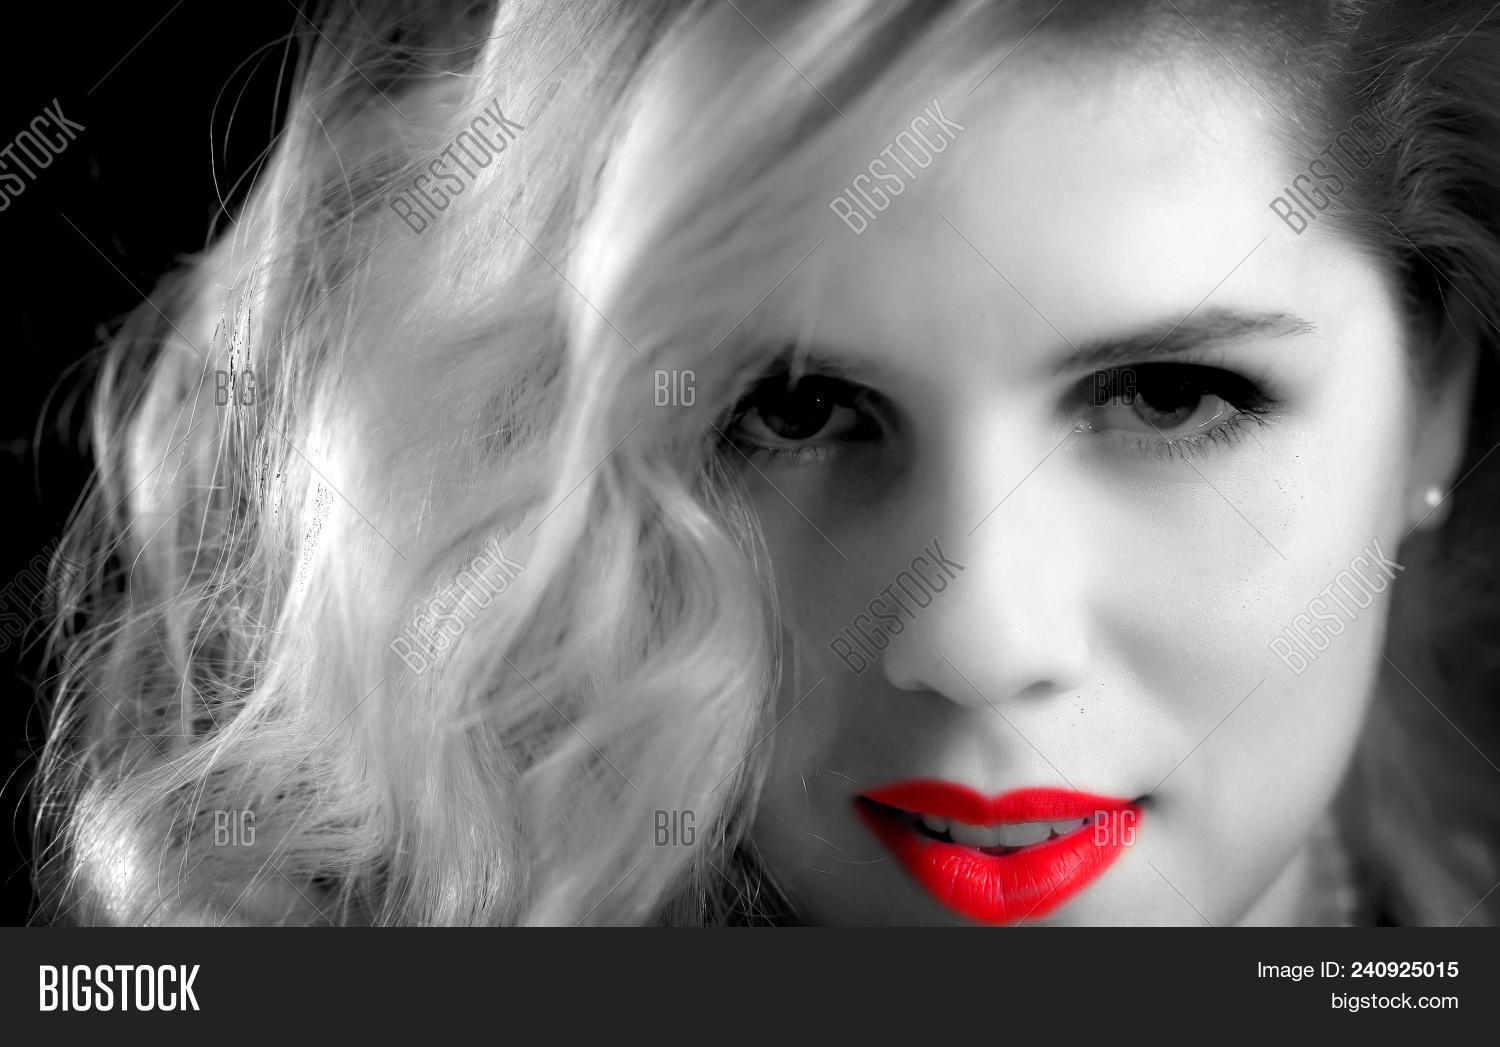 Black and white photos with red color accents how to become model fun and